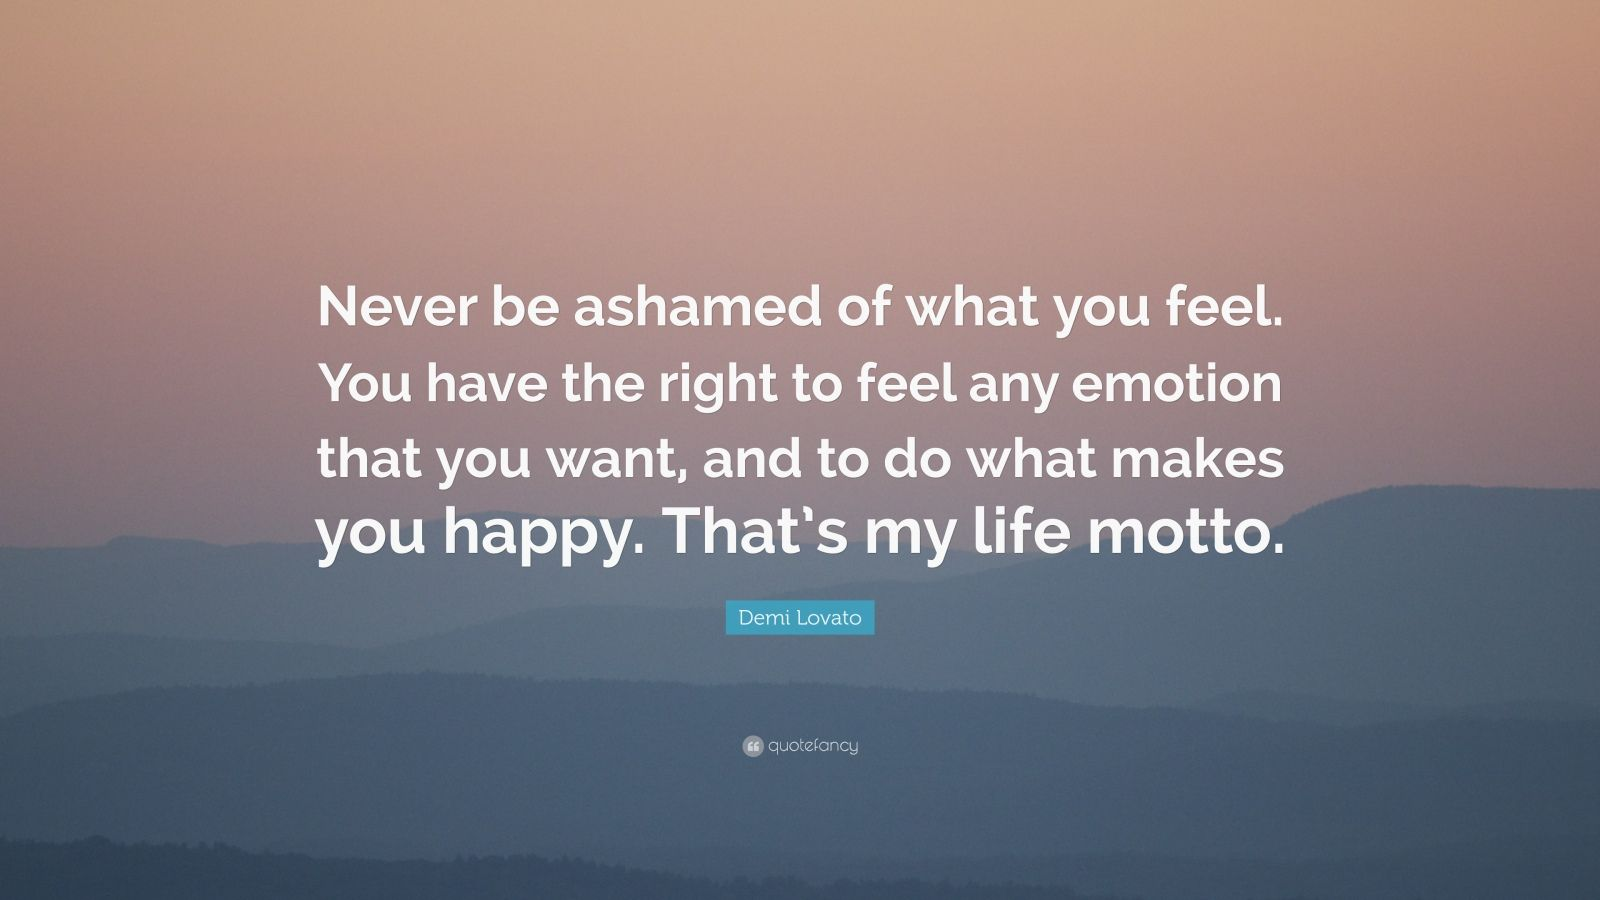 """Demi Lovato Quote: """"Never be ashamed of what you feel. You have the right to feel any emotion that you want, and to do what makes you happy. That's my life motto."""""""